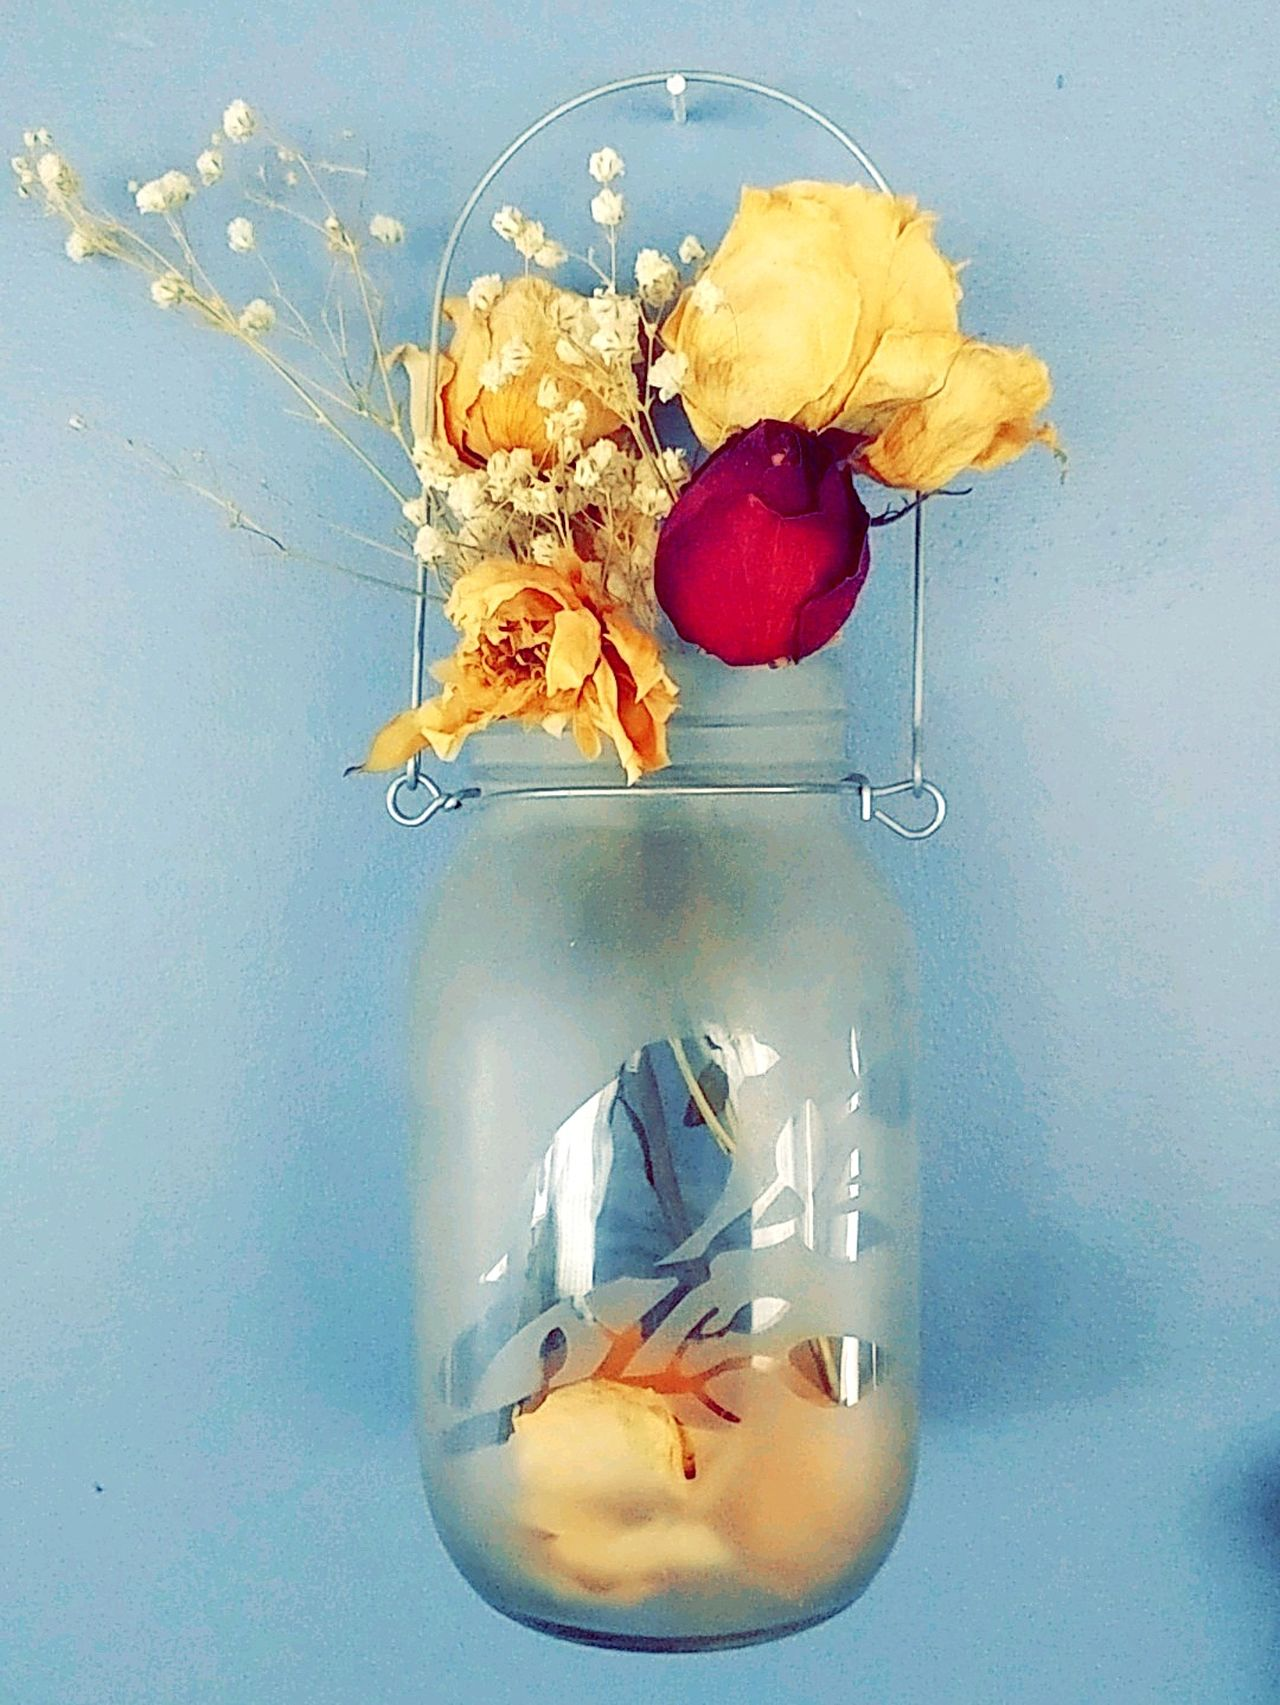 There's beauty in death and rebirth. Colored Background Dried Flowers Flowers Mason Jar Contrast Bright Colors Etched Glass Bird Indoors  Interior Decorating EyeEmNewHere